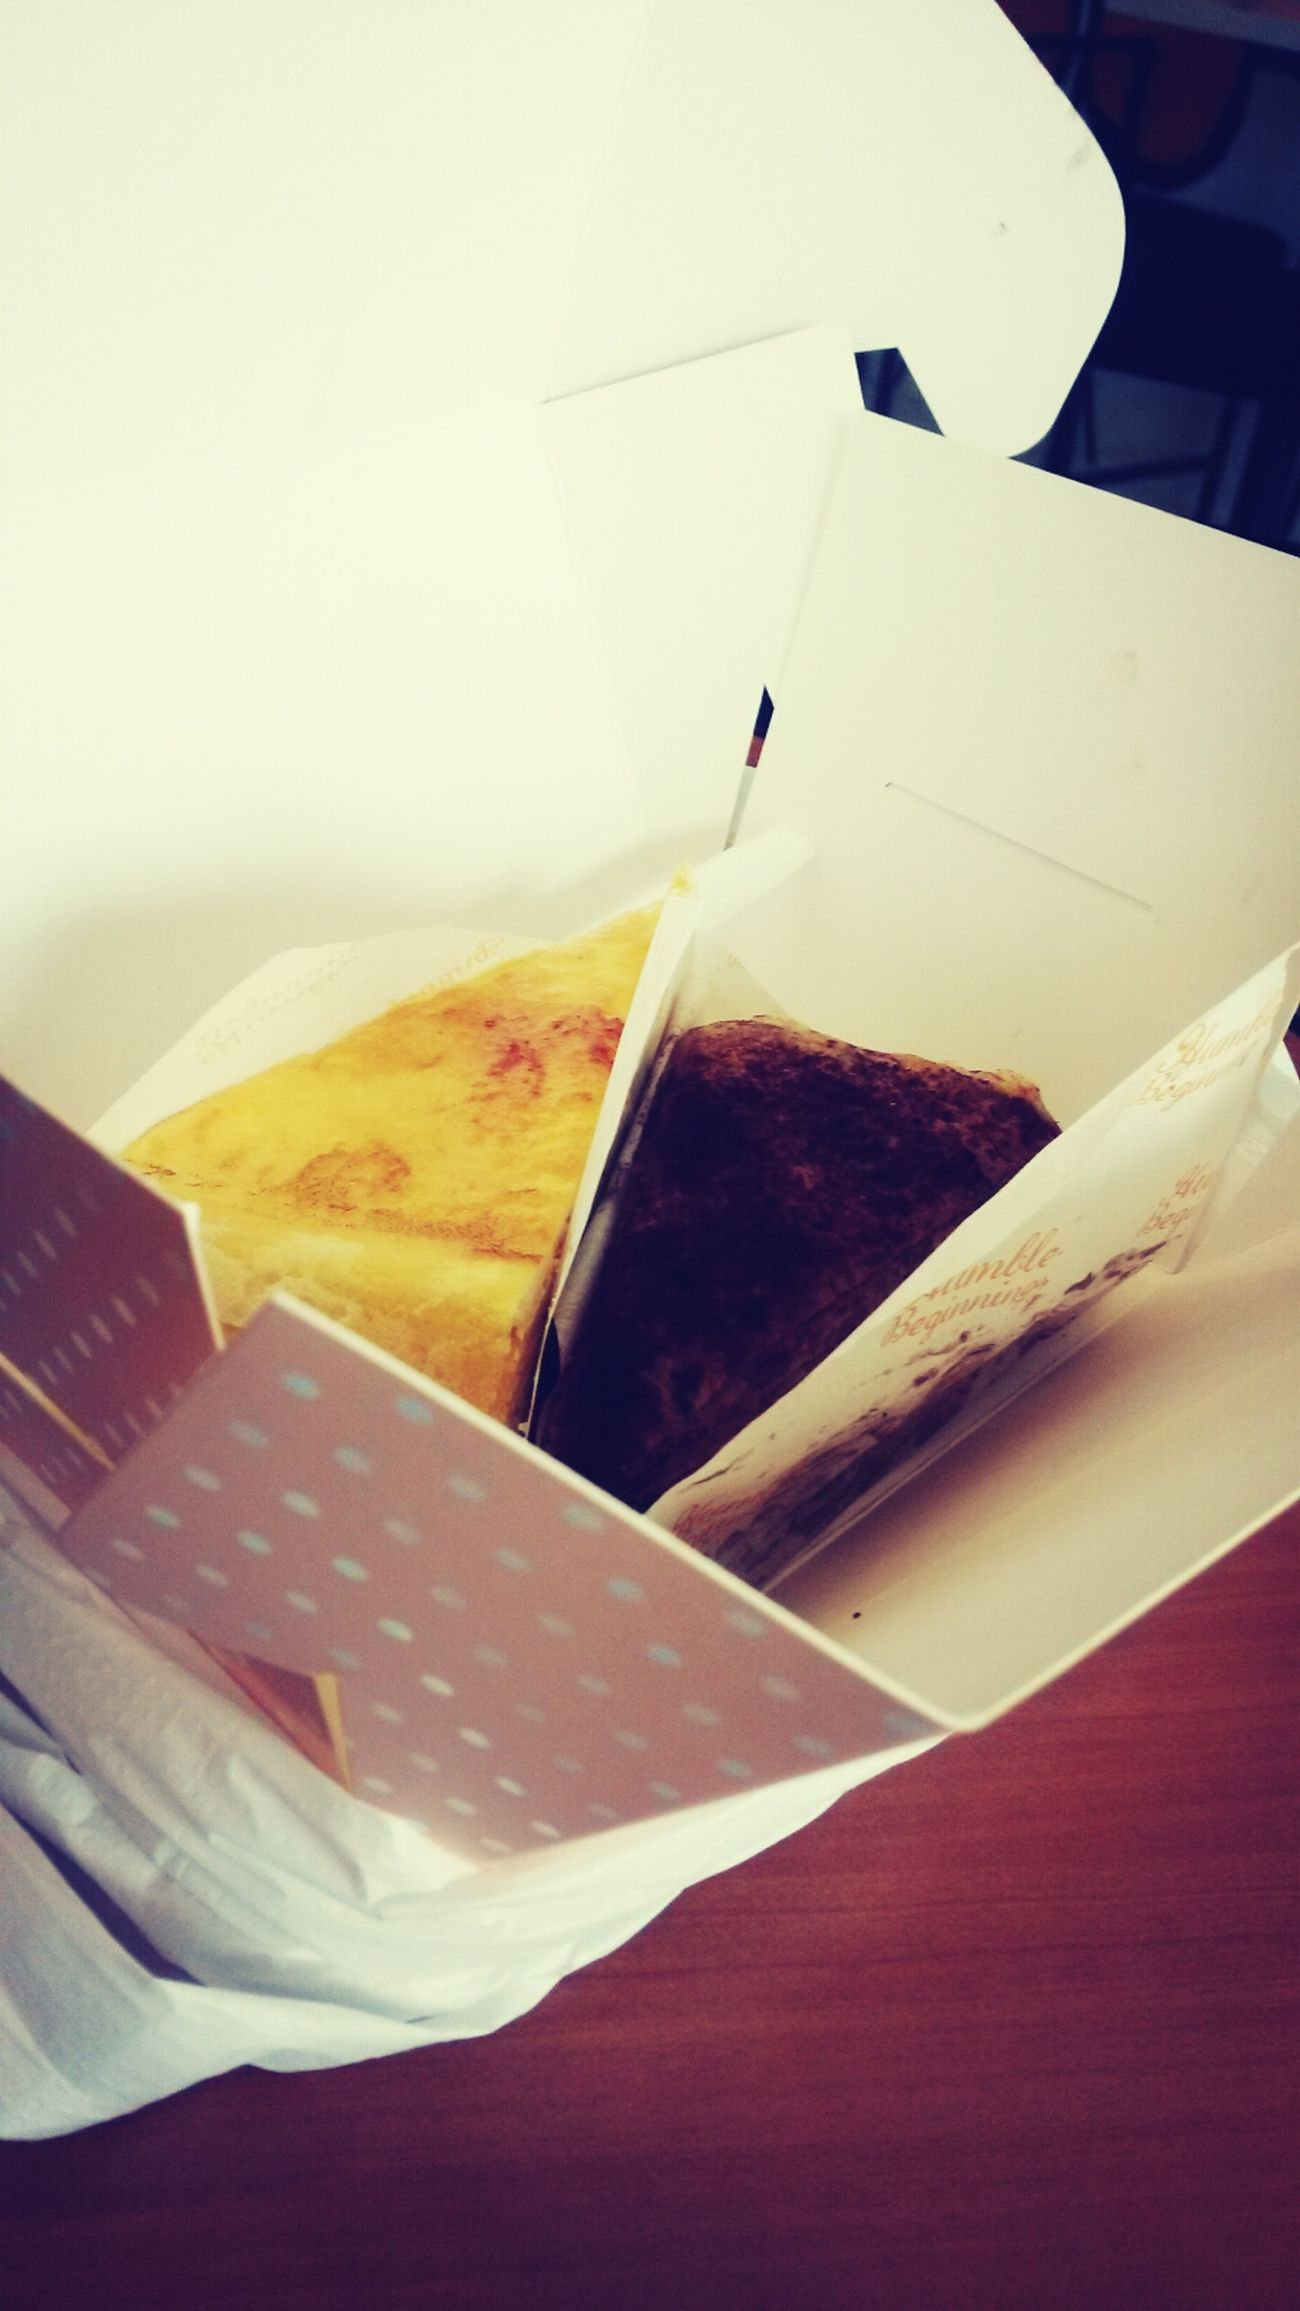 we having this Cakes Yummeyyh! at humble beginnings.so attempt us at lunch..nak lagii =..=' @lianalockas